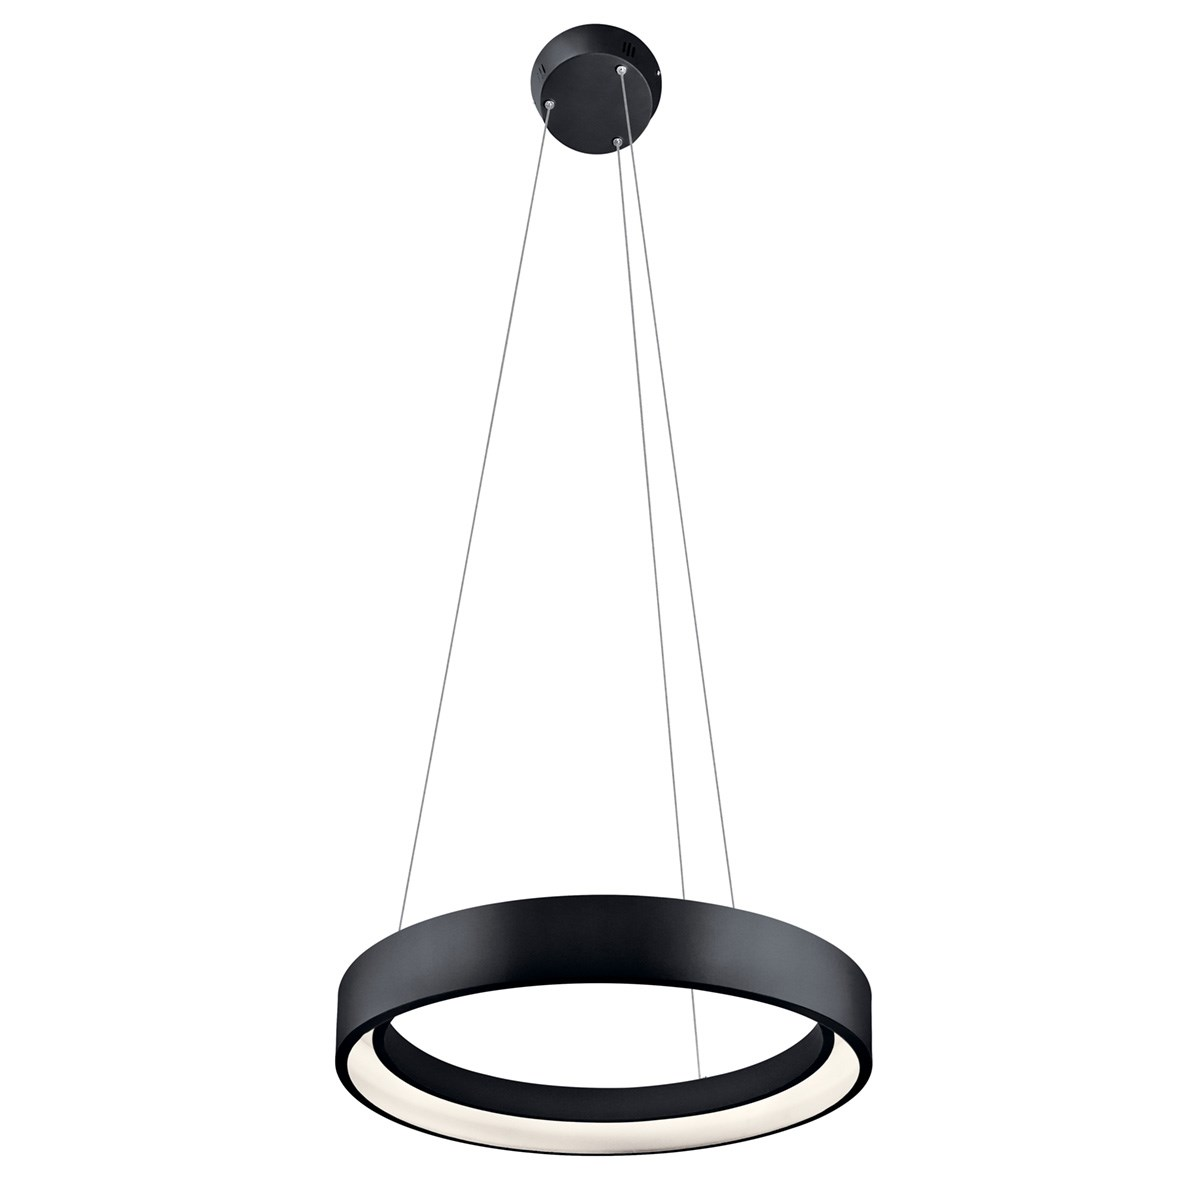 "Fornello™ 17.75"" 1 Light LED Textured Black"